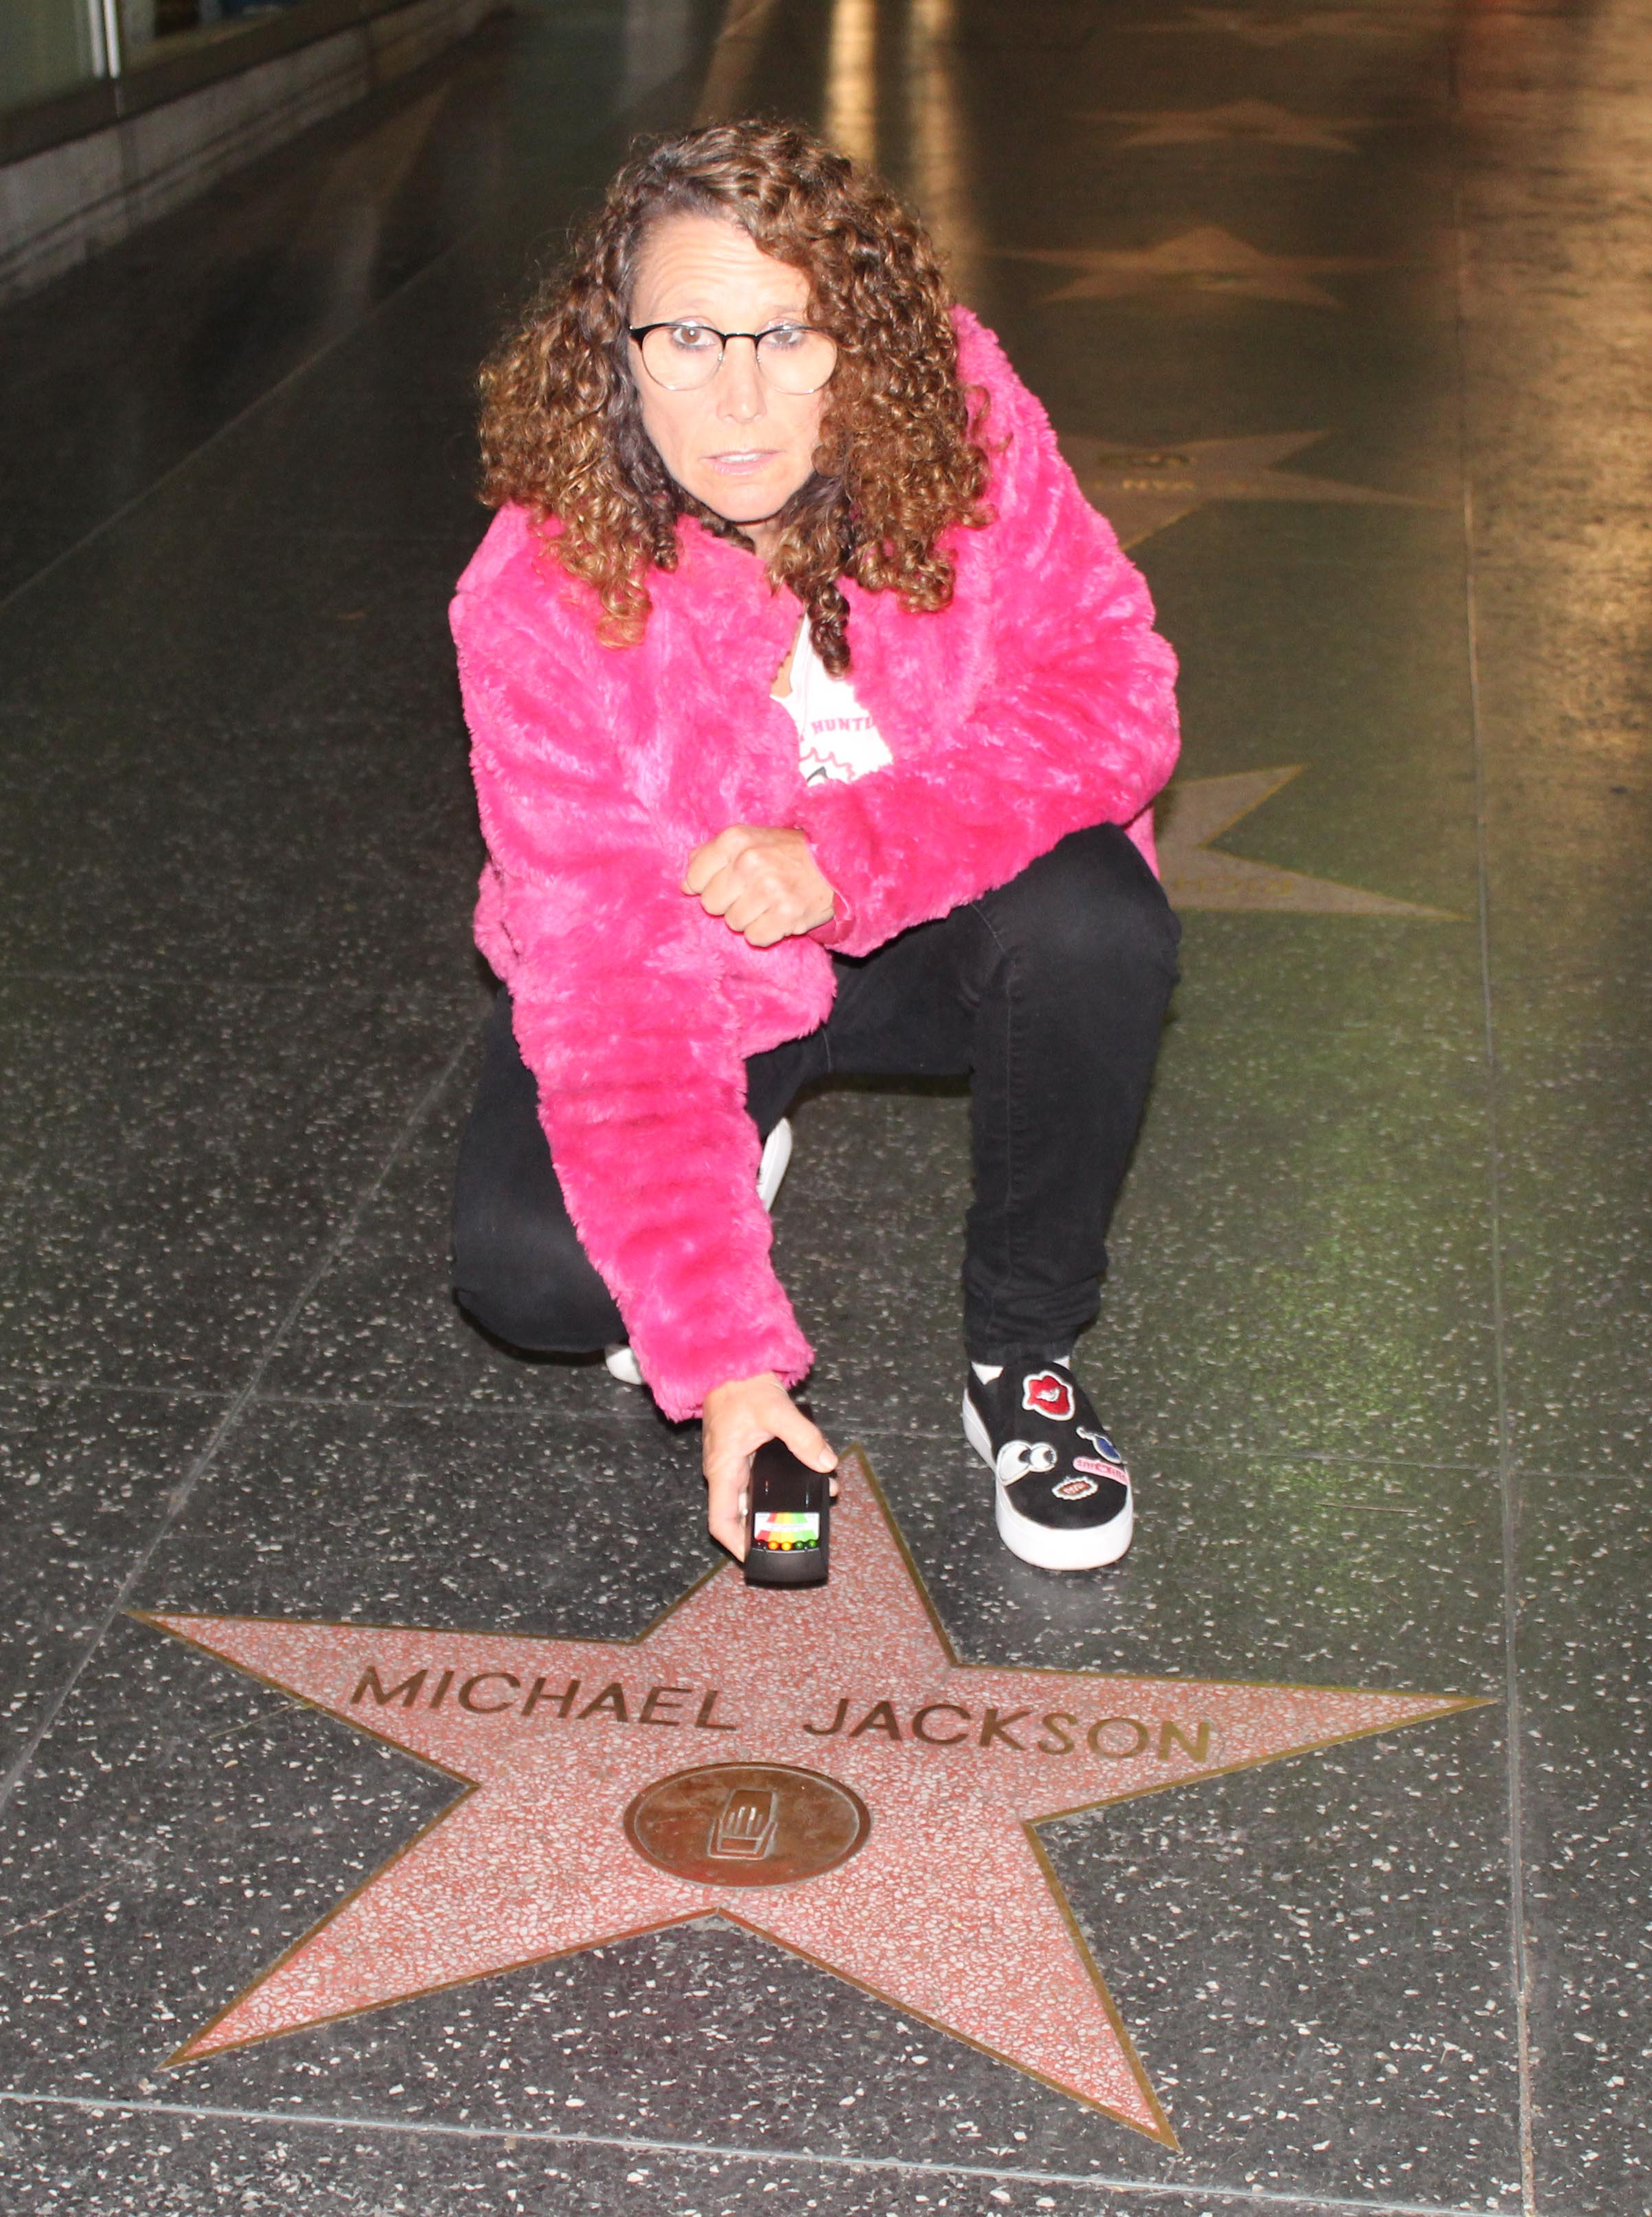 Linda at Michael Jackson star